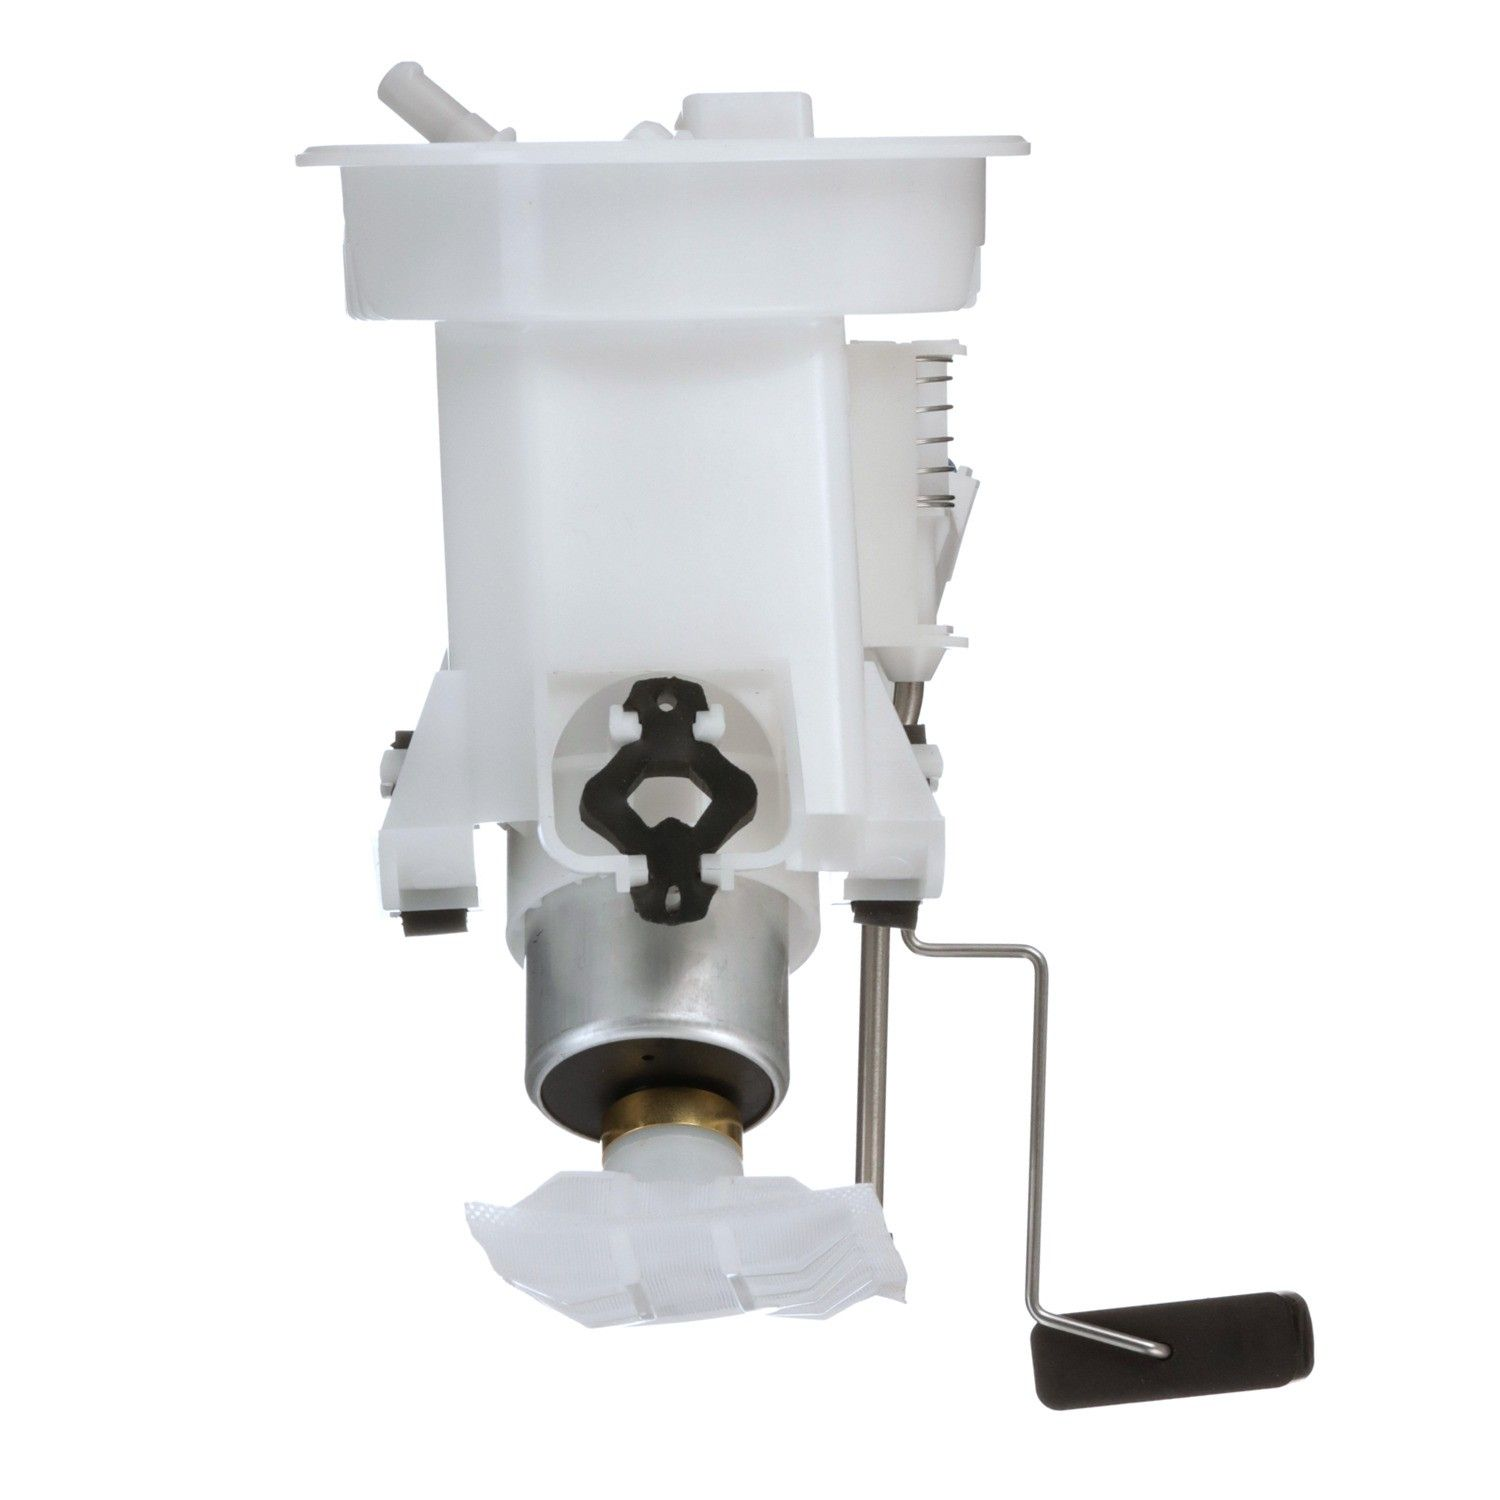 Bmw 318i Fuel Pump Module Assembly Replacement Delphi Vdo Go Parts 1995 4 Cyl 18l Fg1401 External Strainer Once New Has Been Installed And Tank